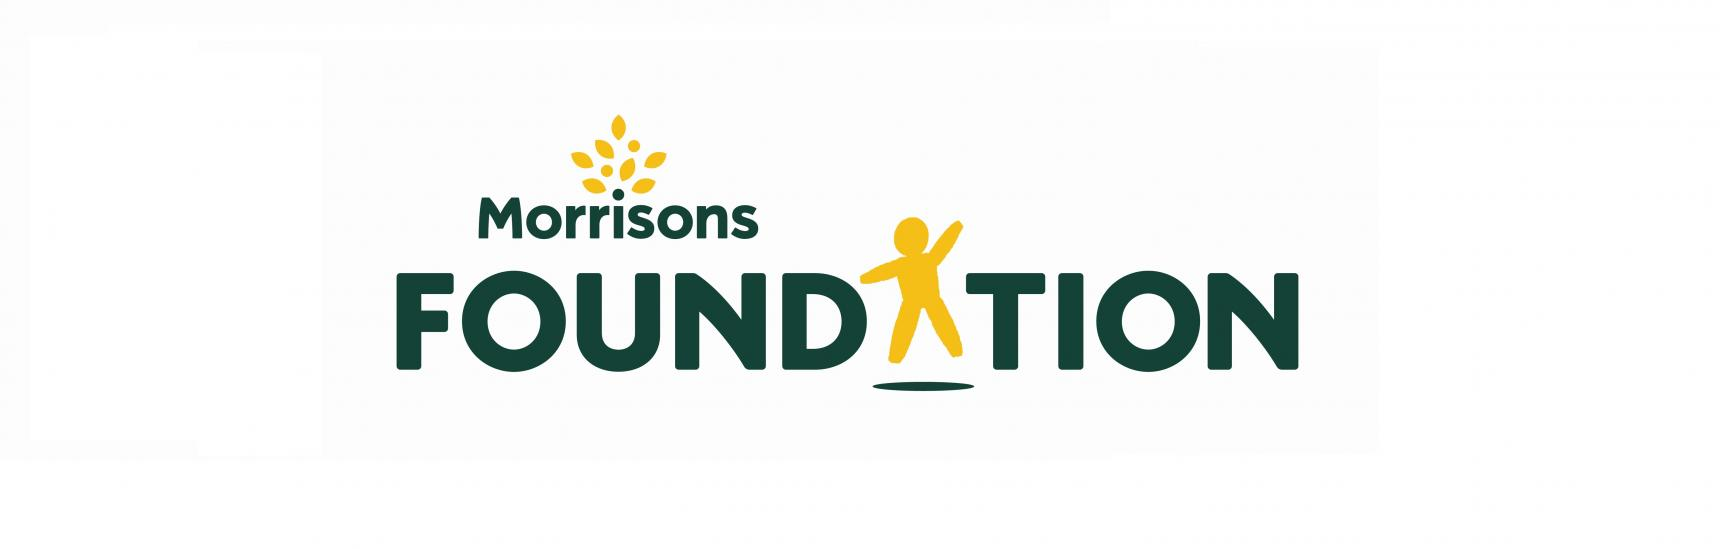 Morrisons Foundation logo